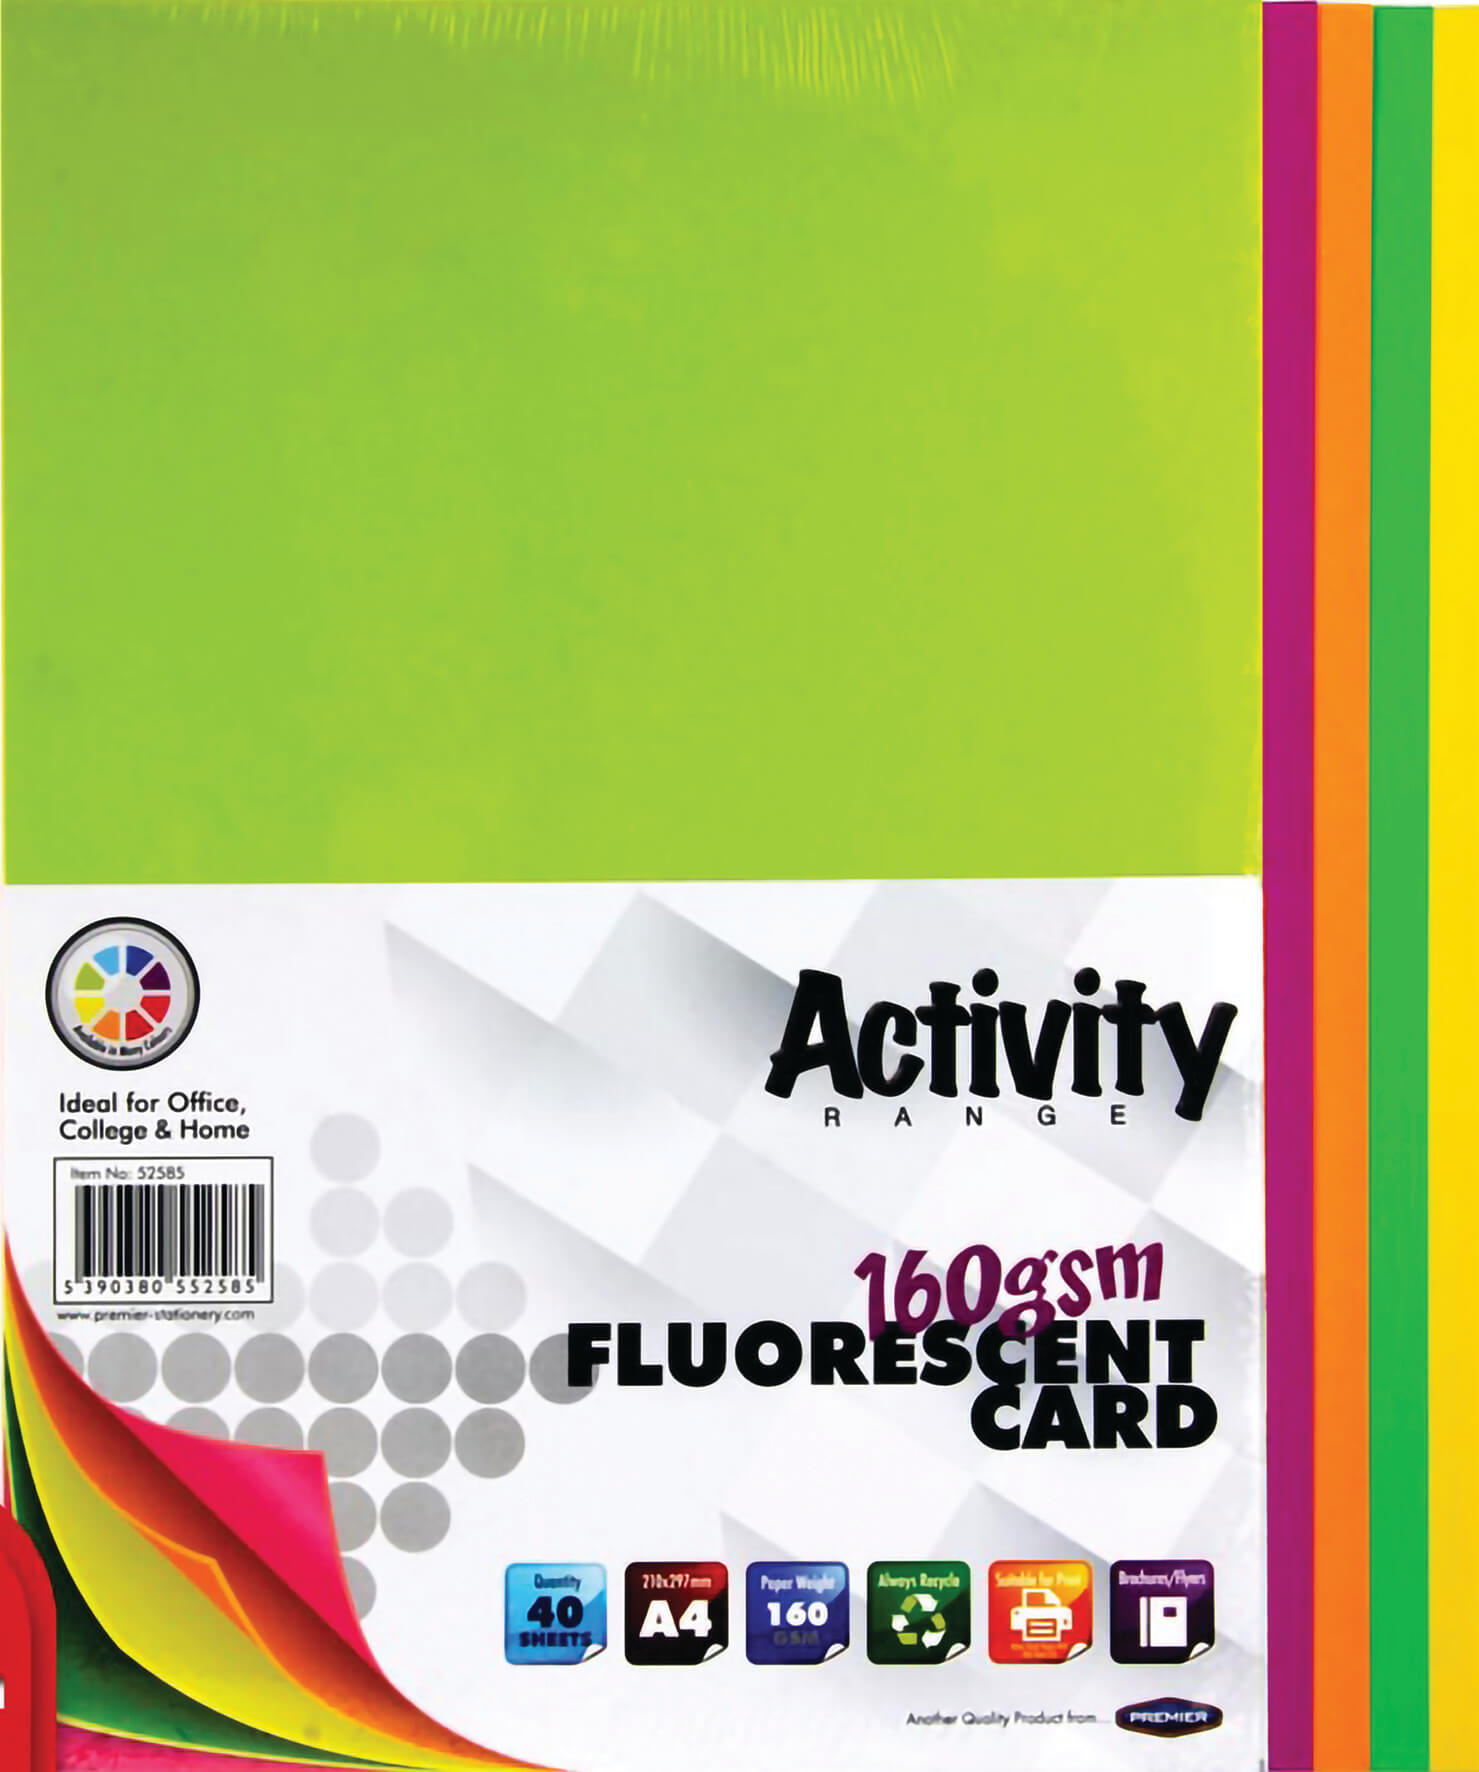 Card Fluorescent A4 160gsm - 40 Sheets